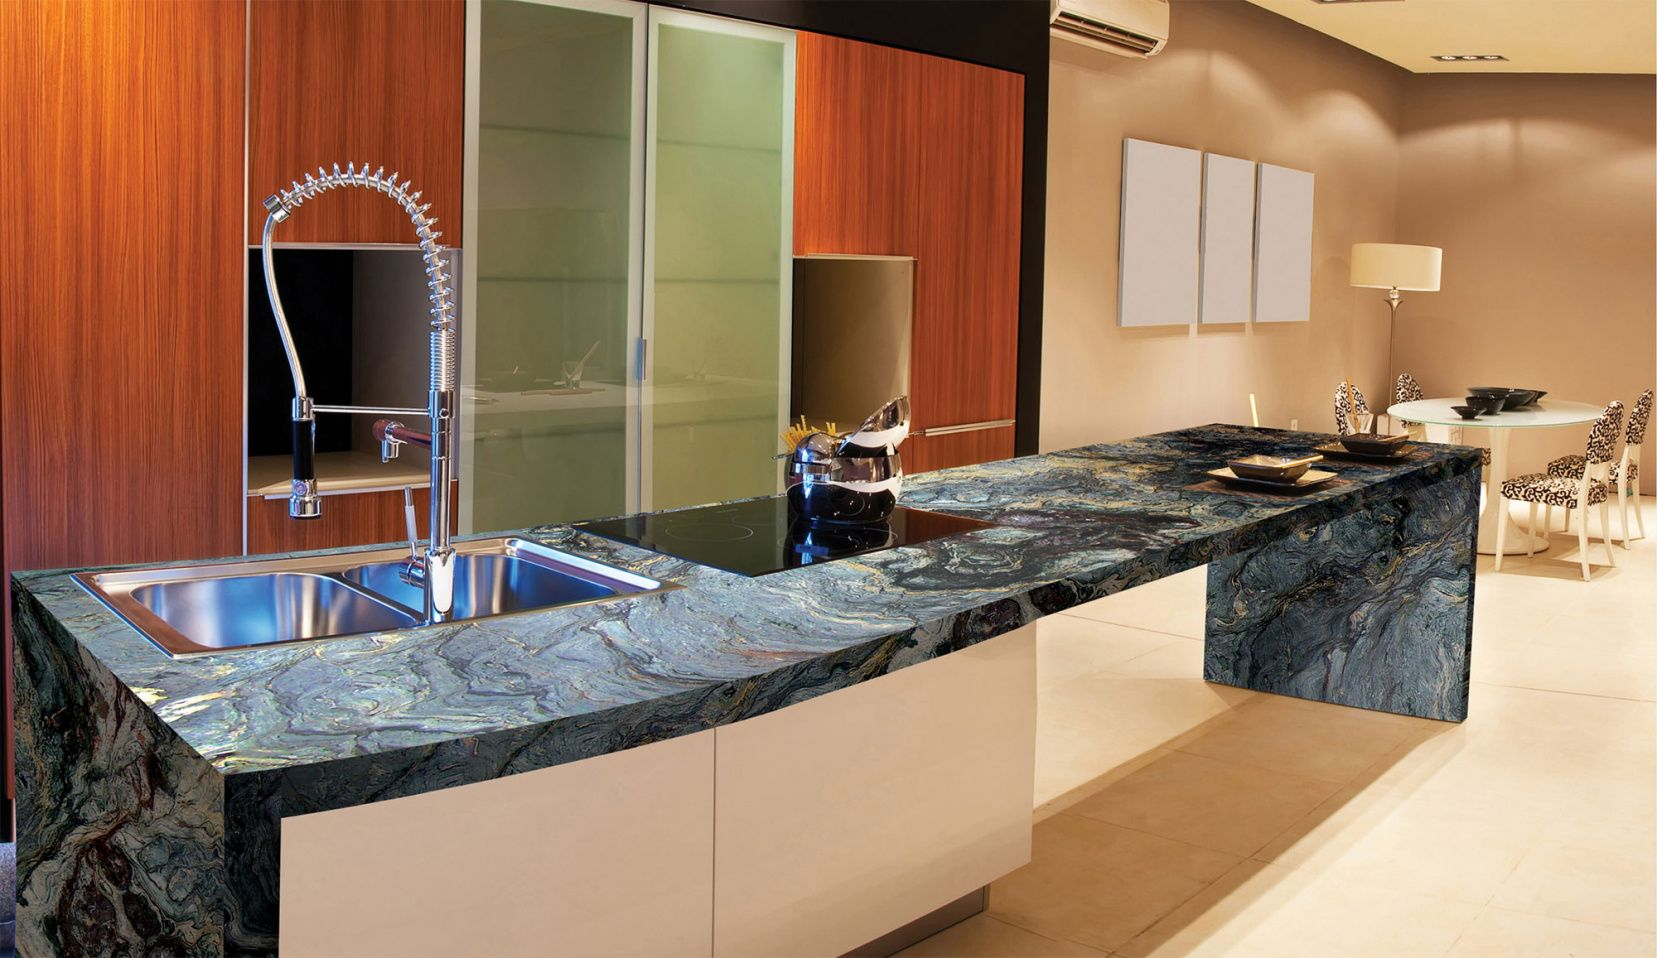 77 granite countertop companies near me kitchen floor vinyl ideas check more at http